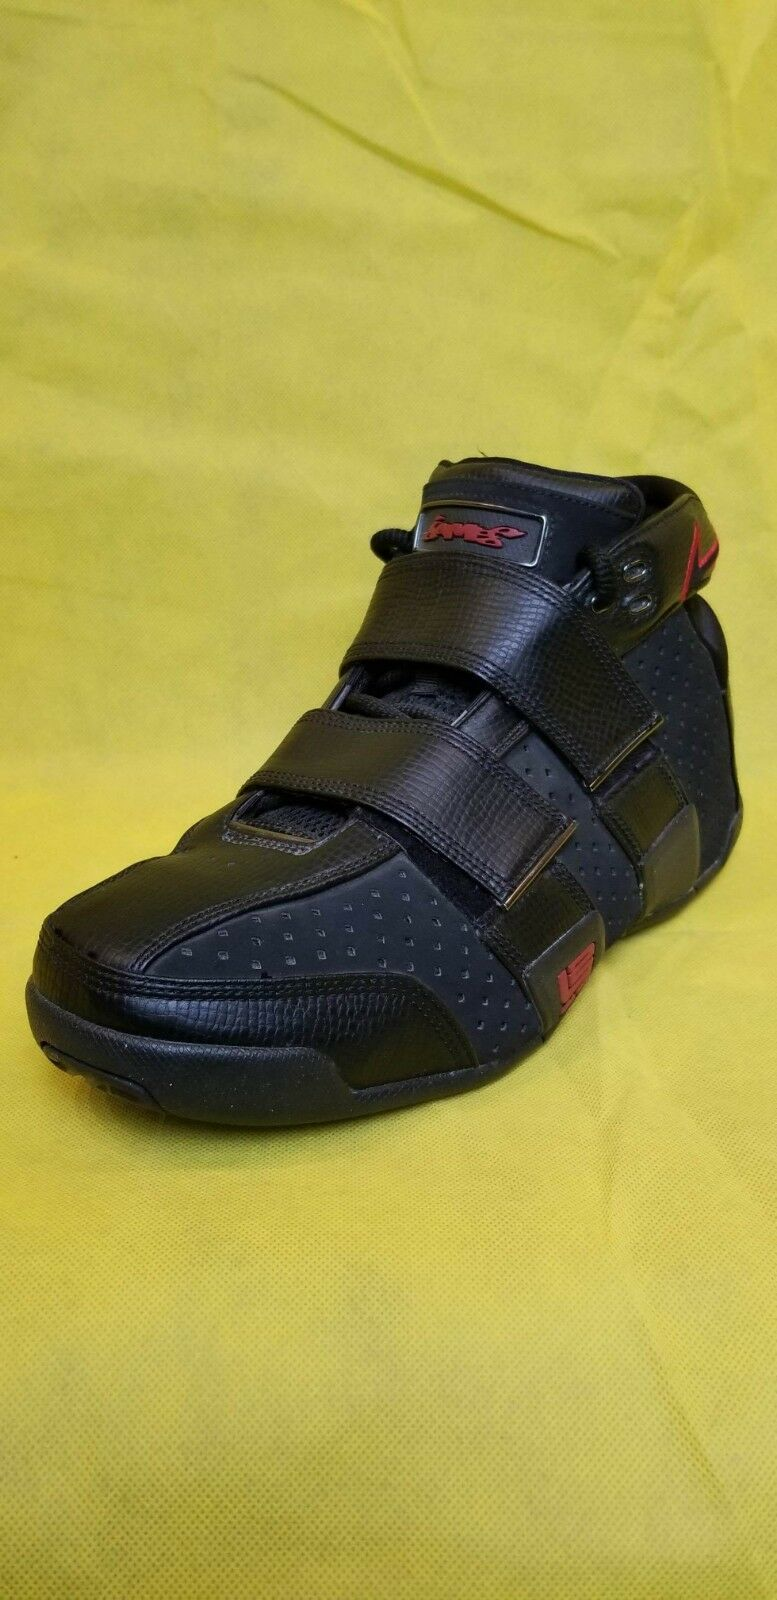 c5ed2a5c1a Men's RARE 2005 ZOOM LEBRON Rookie 20-5-5 Black & Red (Size 12) NIKE  ntyjgt1473-Athletic Shoes